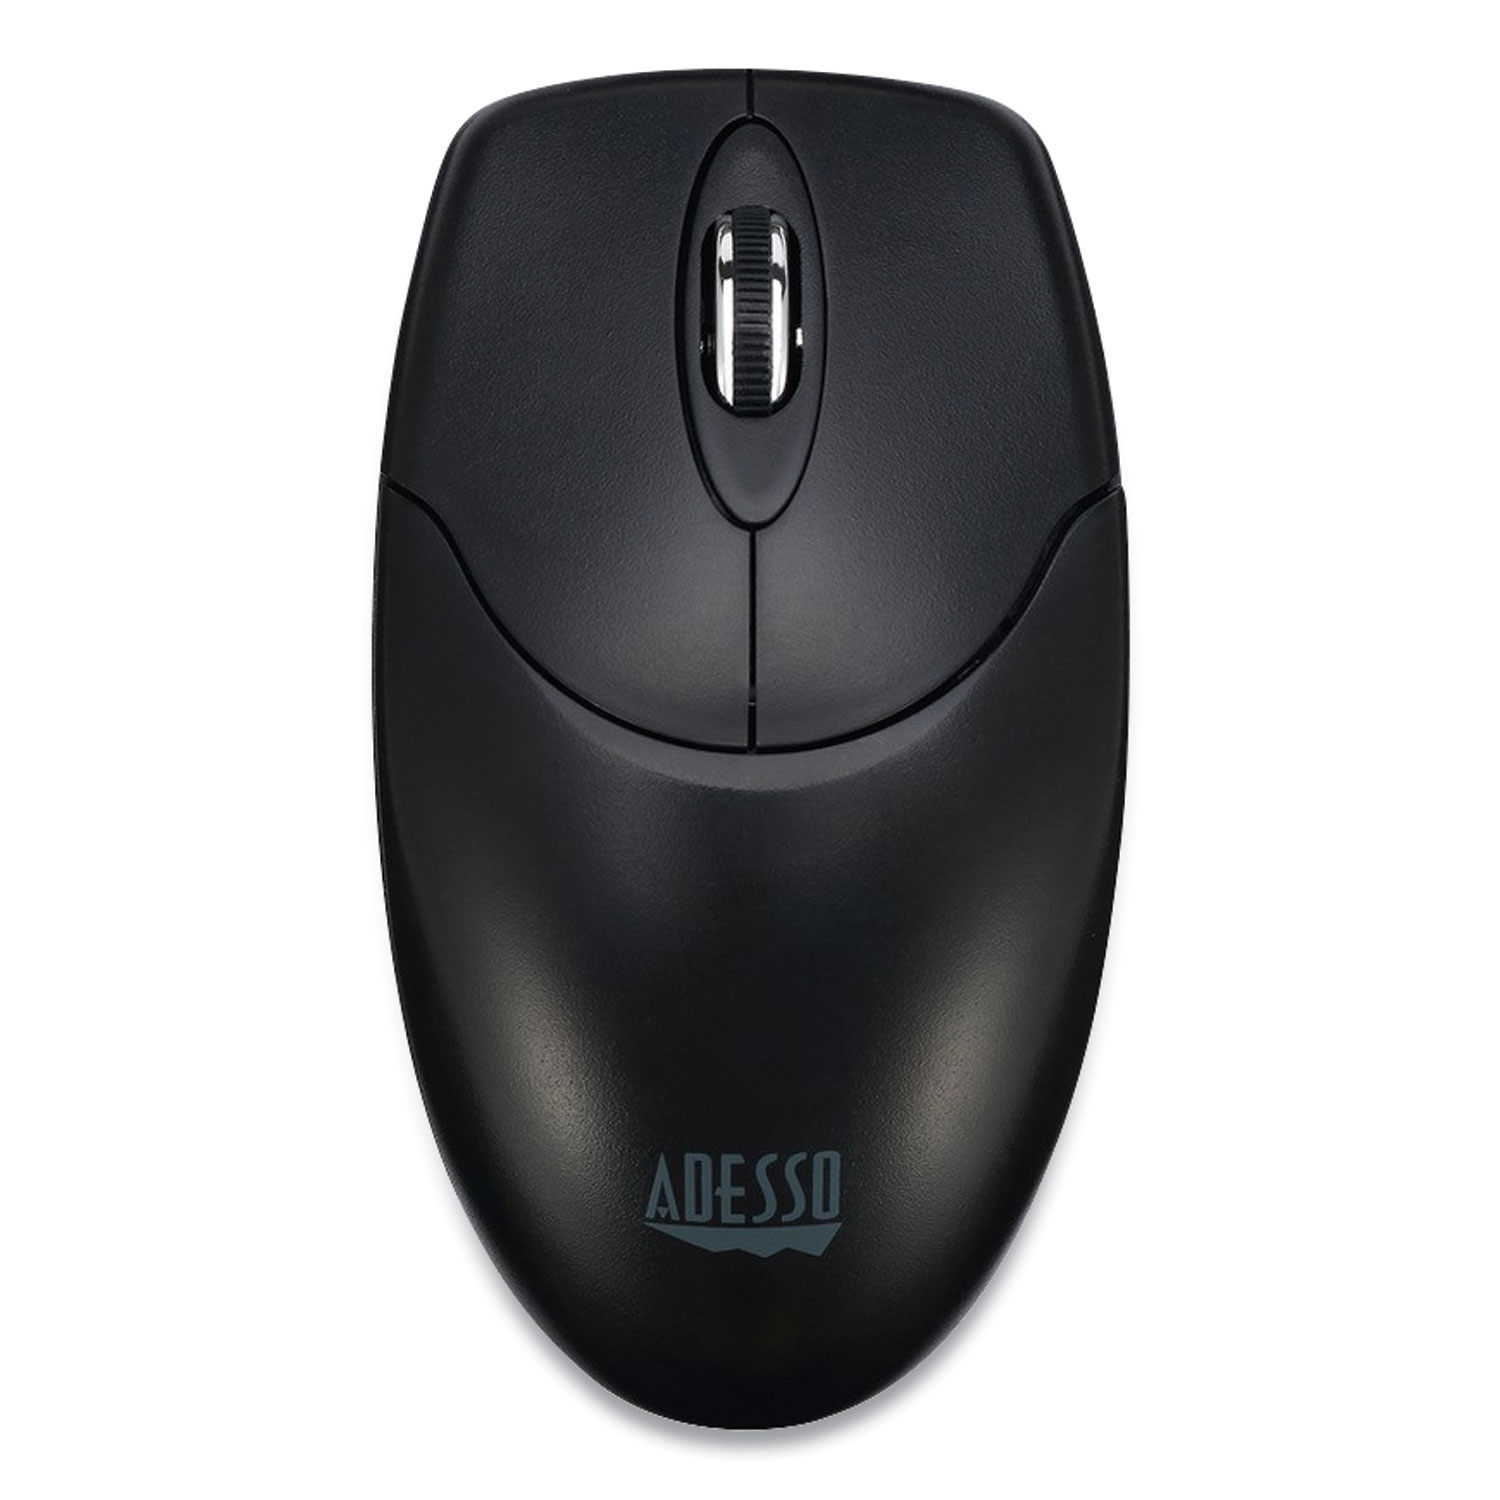 Adesso iMouse M60 Antimicrobial Wireless Mouse, 2.4 GHz Frequency/30 ft Wireless Range, Left/Right Hand Use, Black